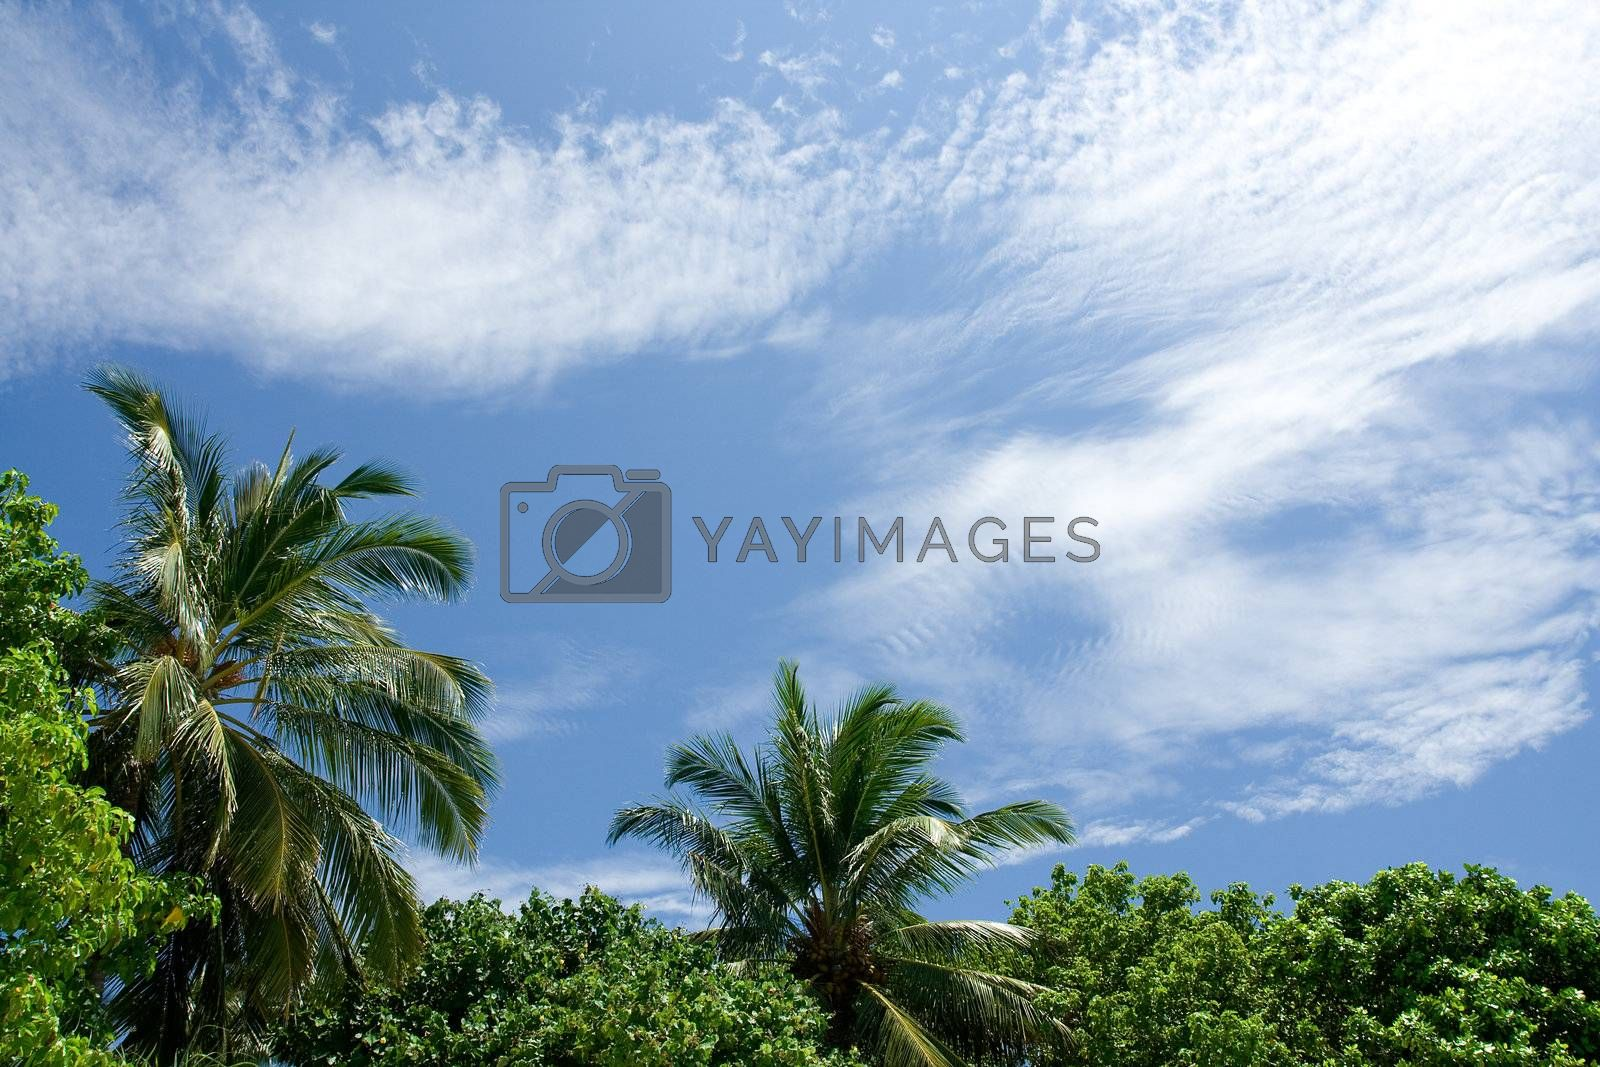 Lying on the beach and looking at the top of palm trees and blue tropical sky